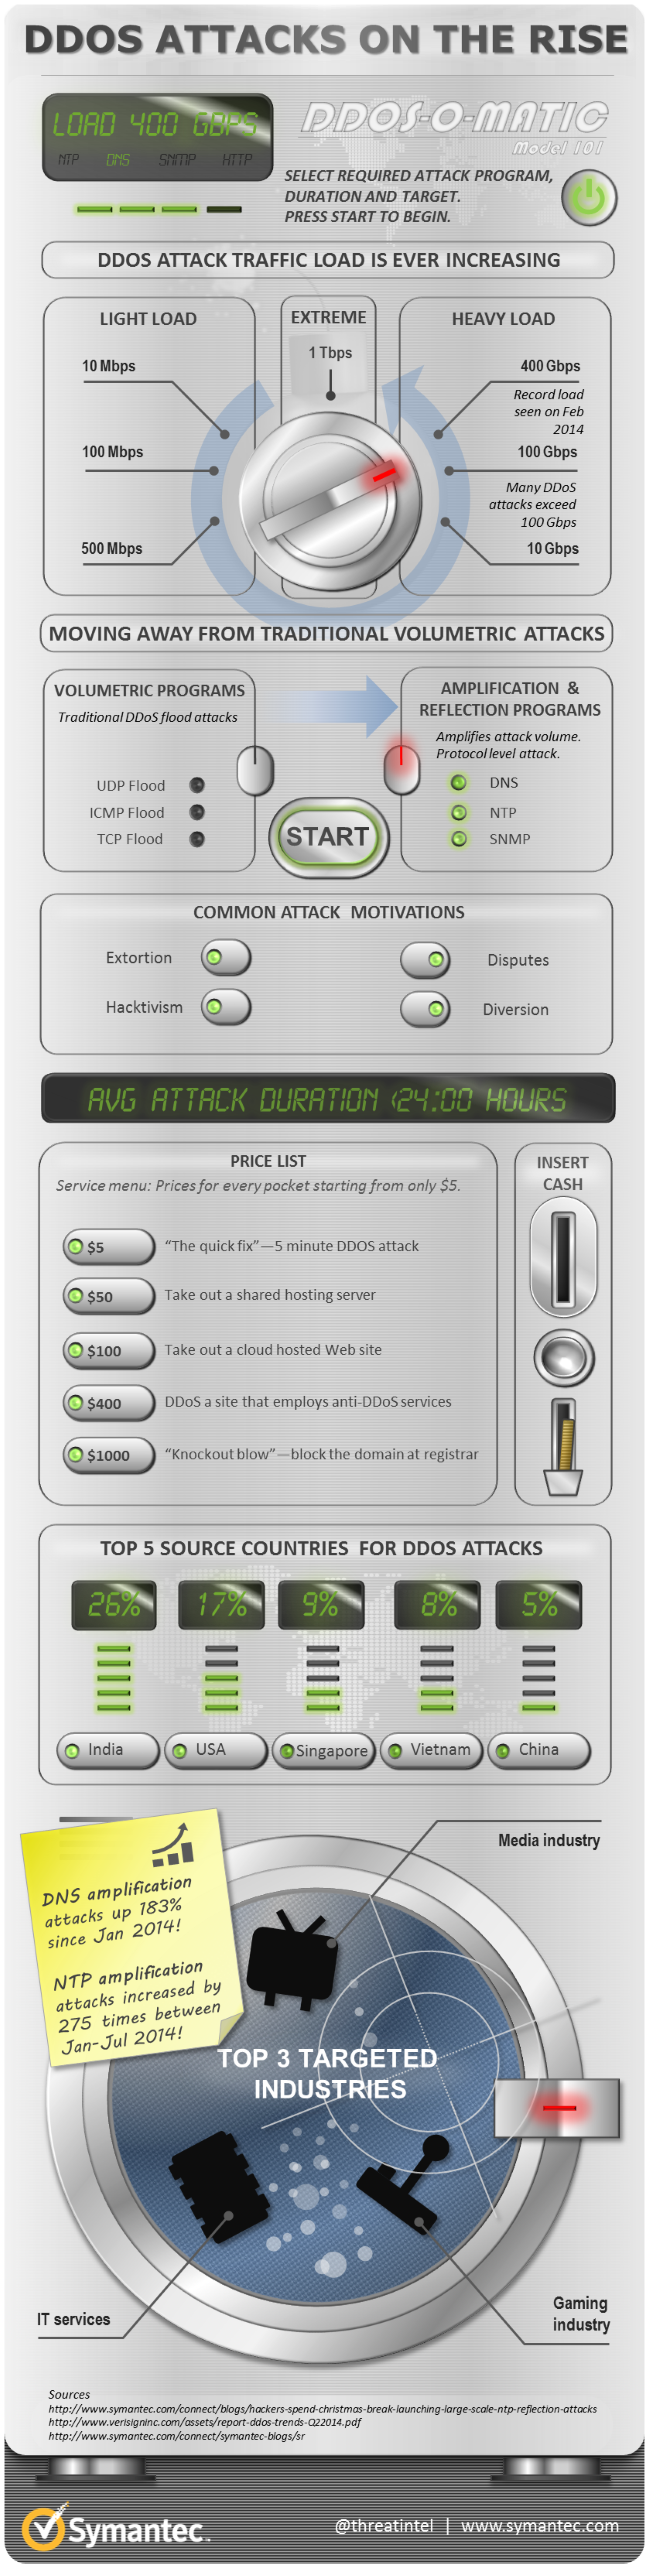 DDoS-Infographic.png